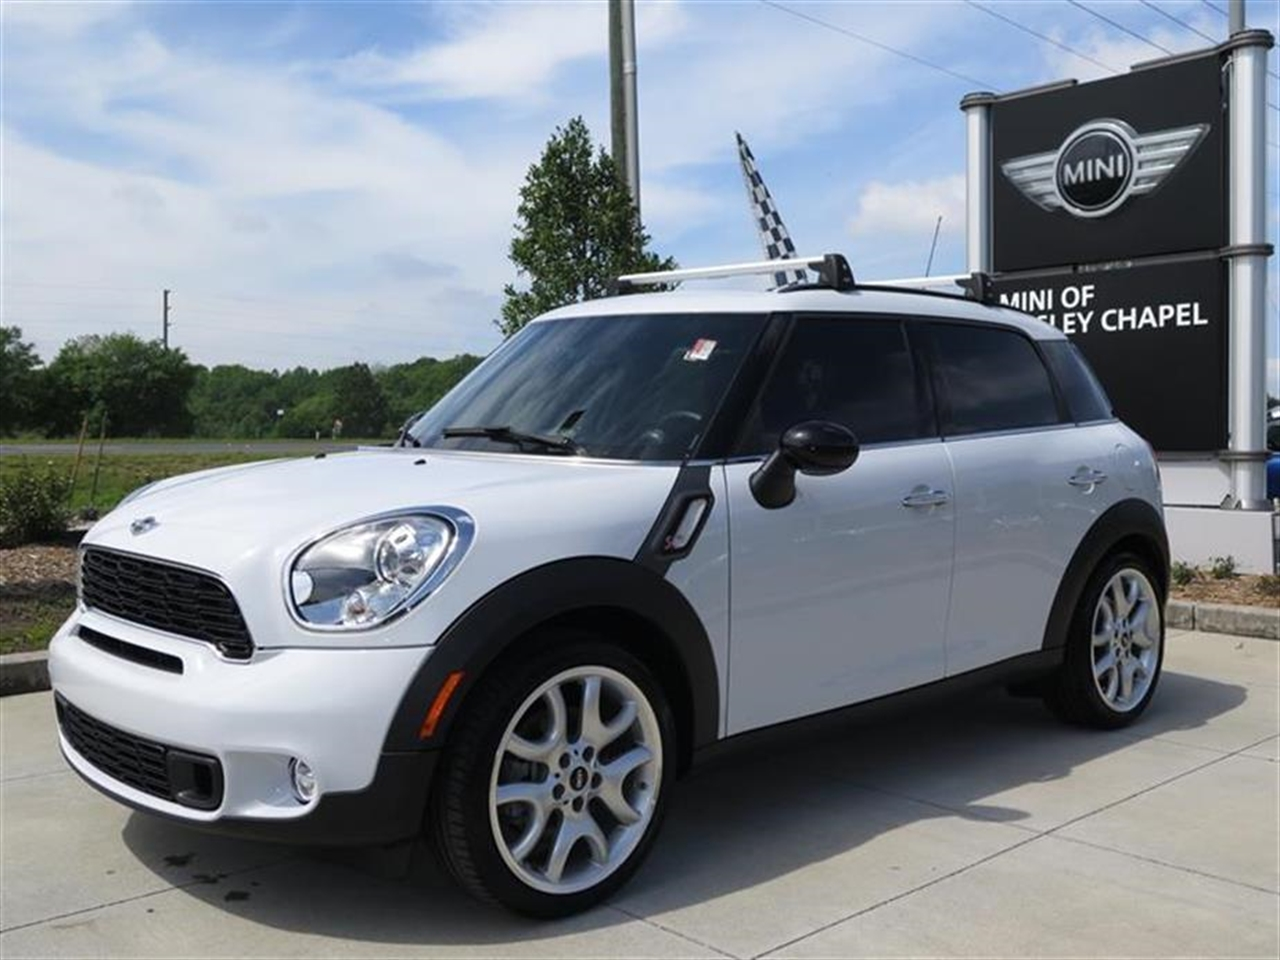 2014 MINI COOPER COUNTRYMAN FWD 4dr S 6 miles 2 Seatback Storage Pockets 3 12V DC Power Outlets